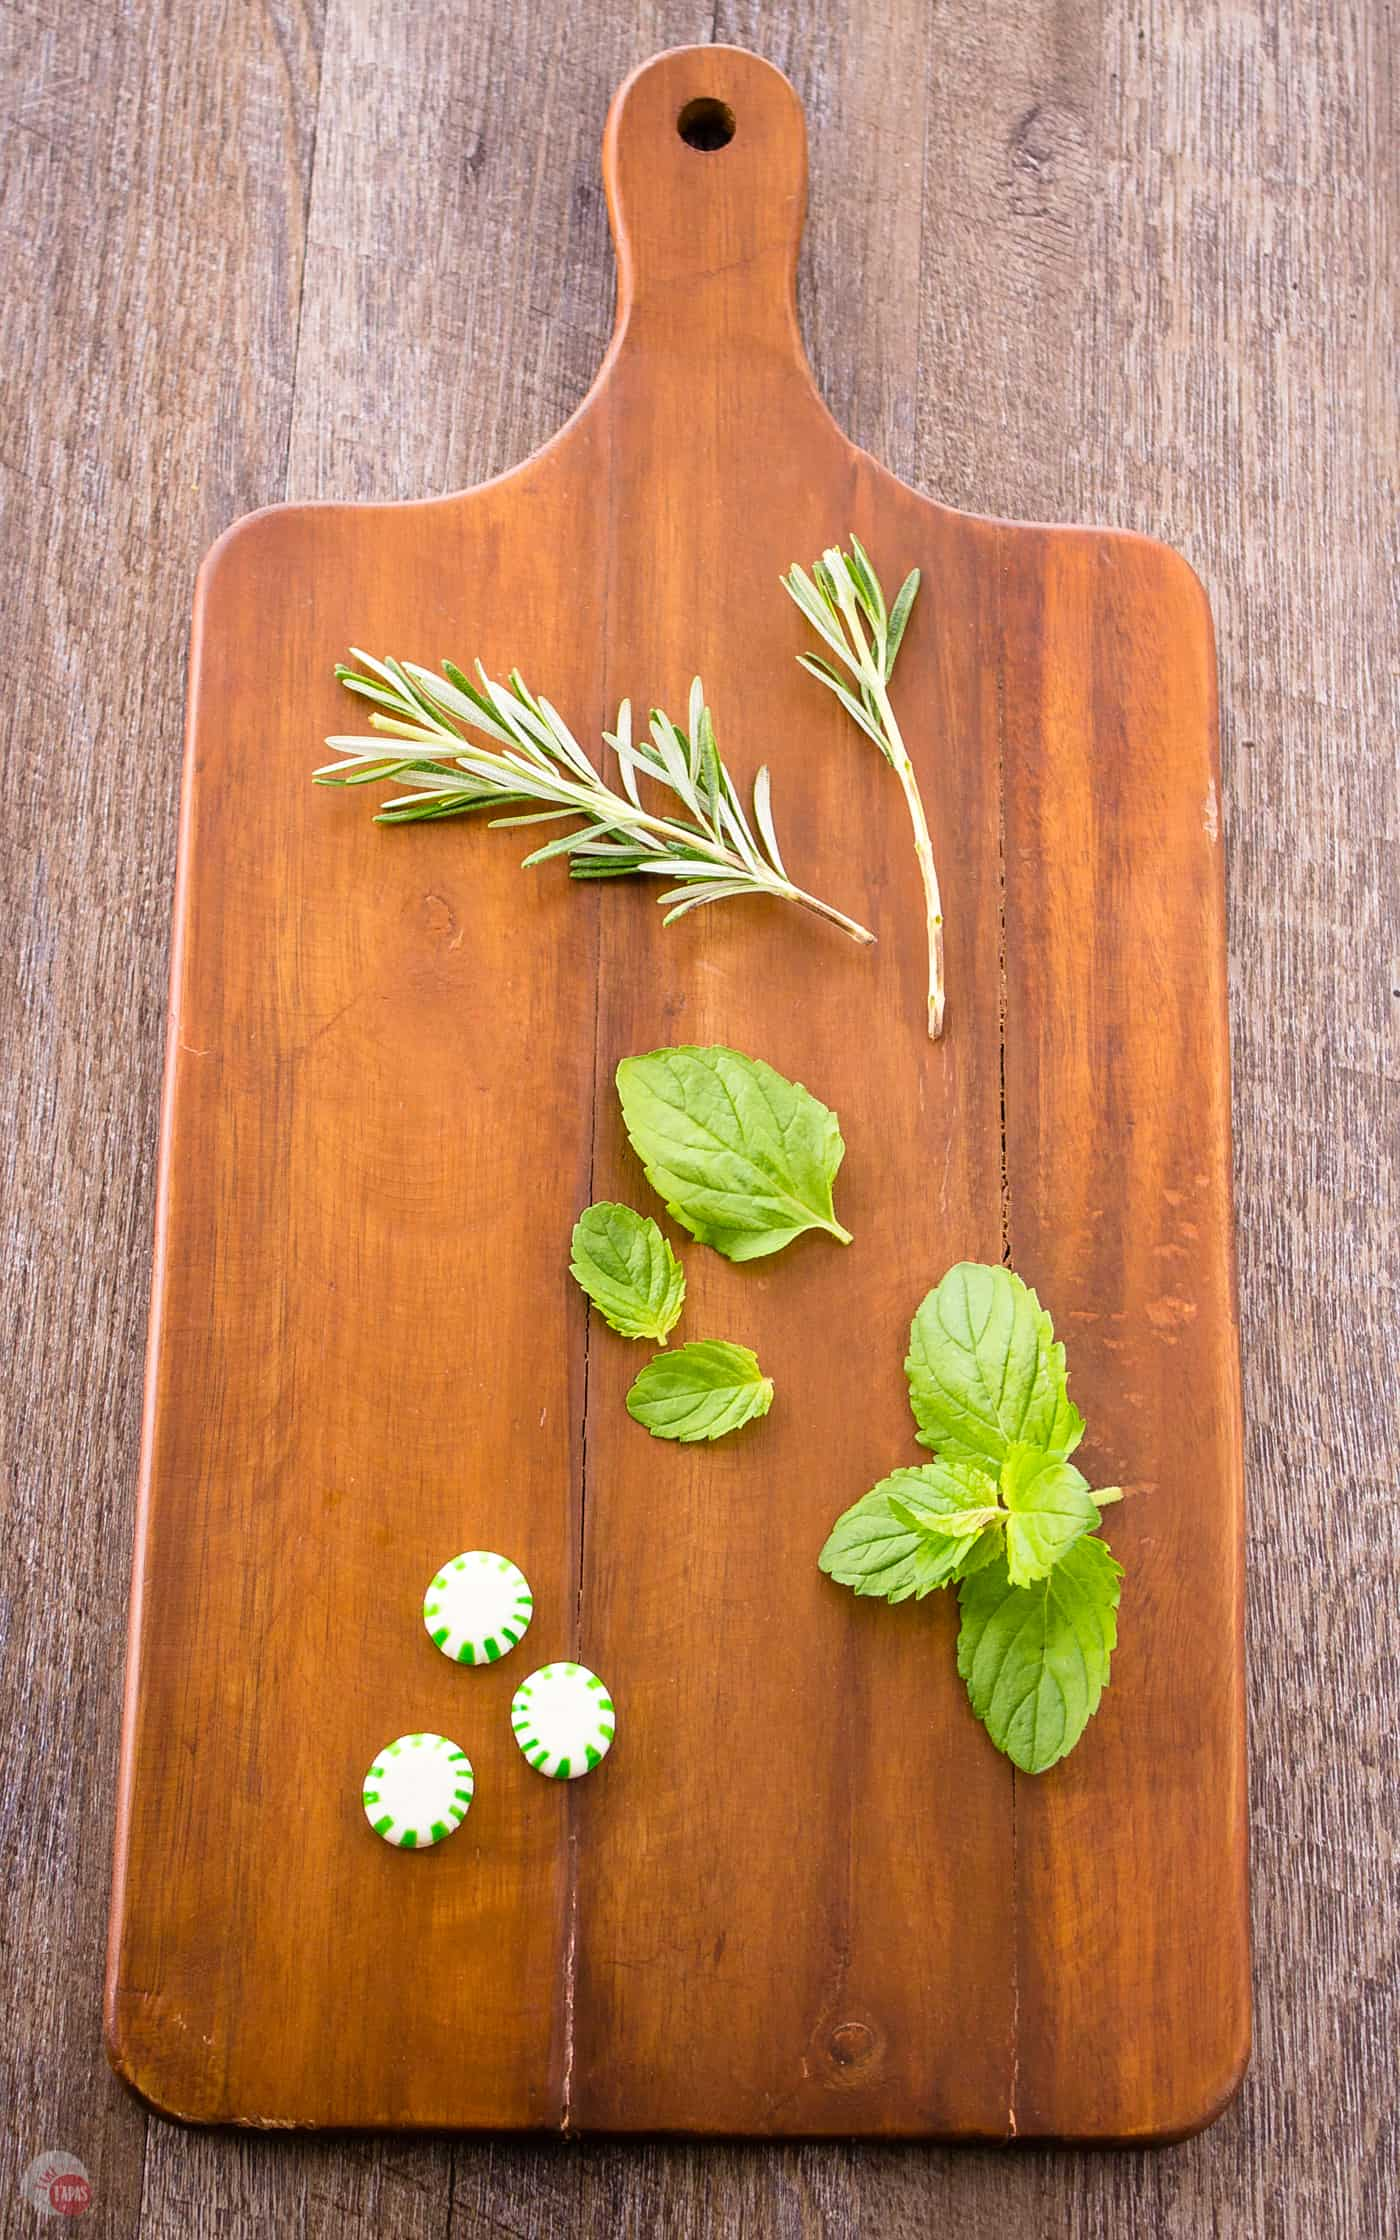 Fresh herbs and candies make great cocktail garnishes too! #CocktailGarnishes #Garnishes #Cocktails | Take Two Tapas | #CocktailGarnishes #Cocktails #Garnishes #Bartender